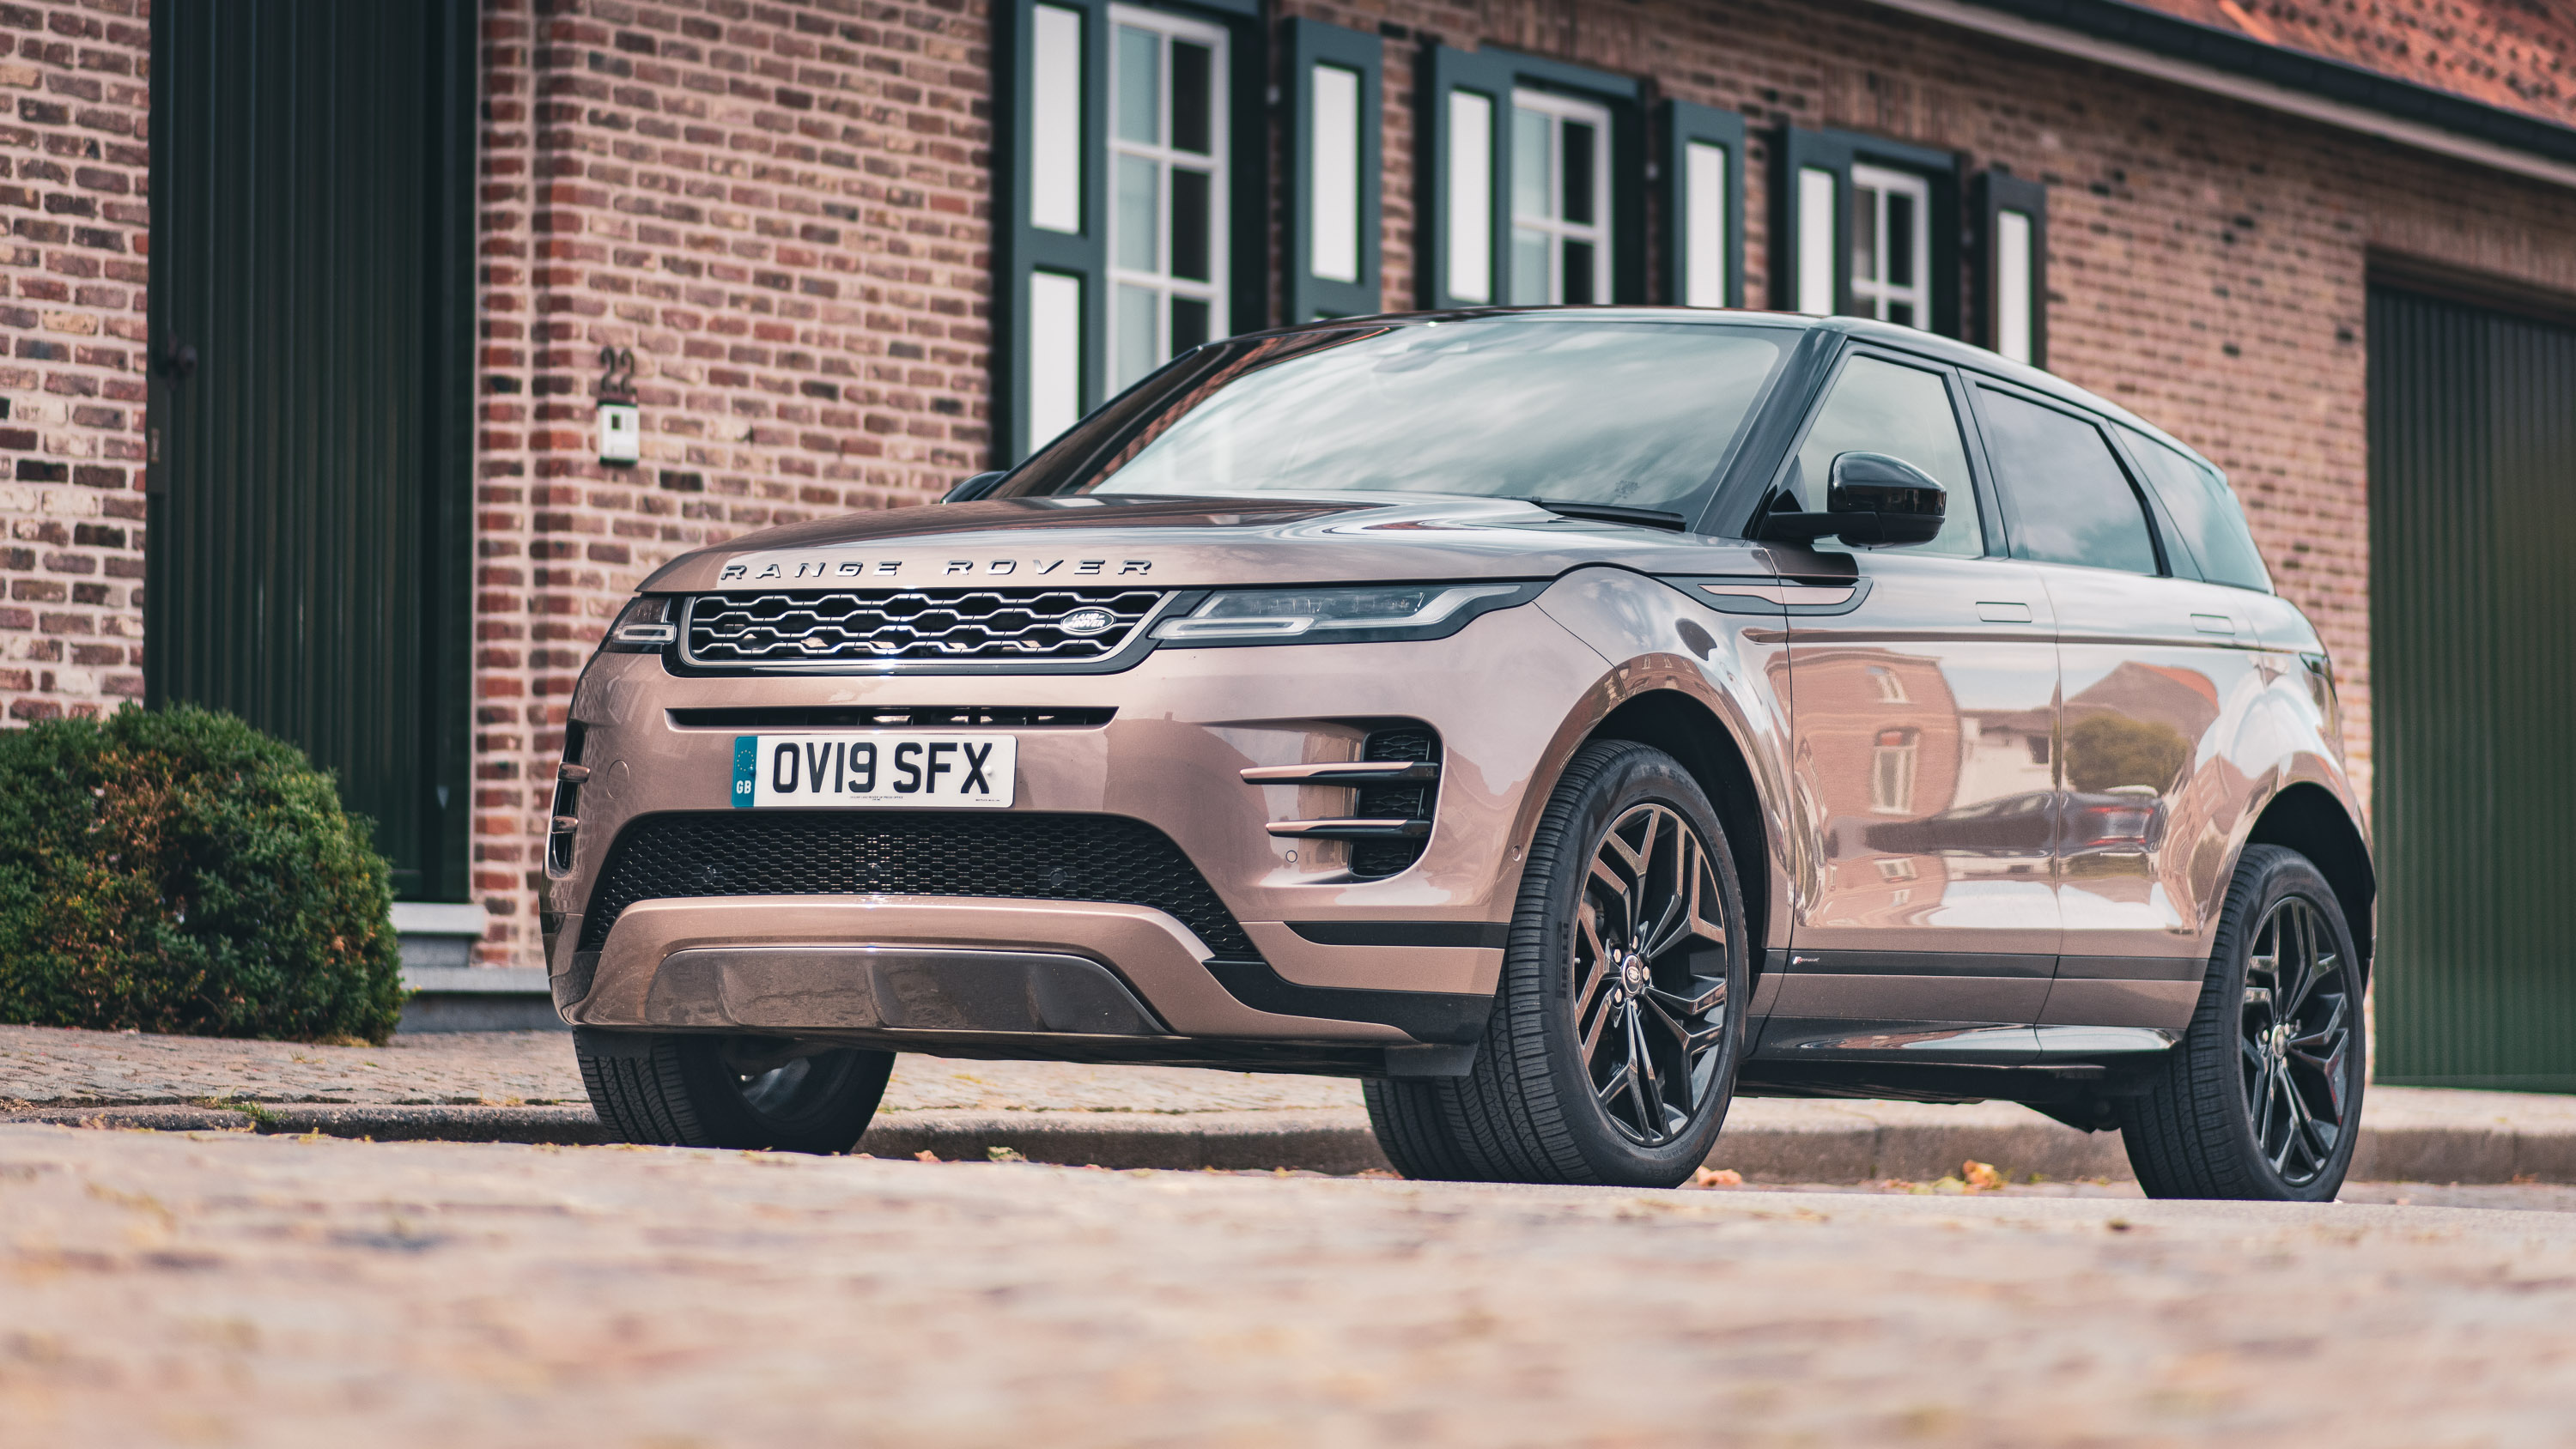 2020 Range Rover Evoque: Redesign, Specs, News, Release >> Range Rover Evoque 2020 Review Top Ten Reviews